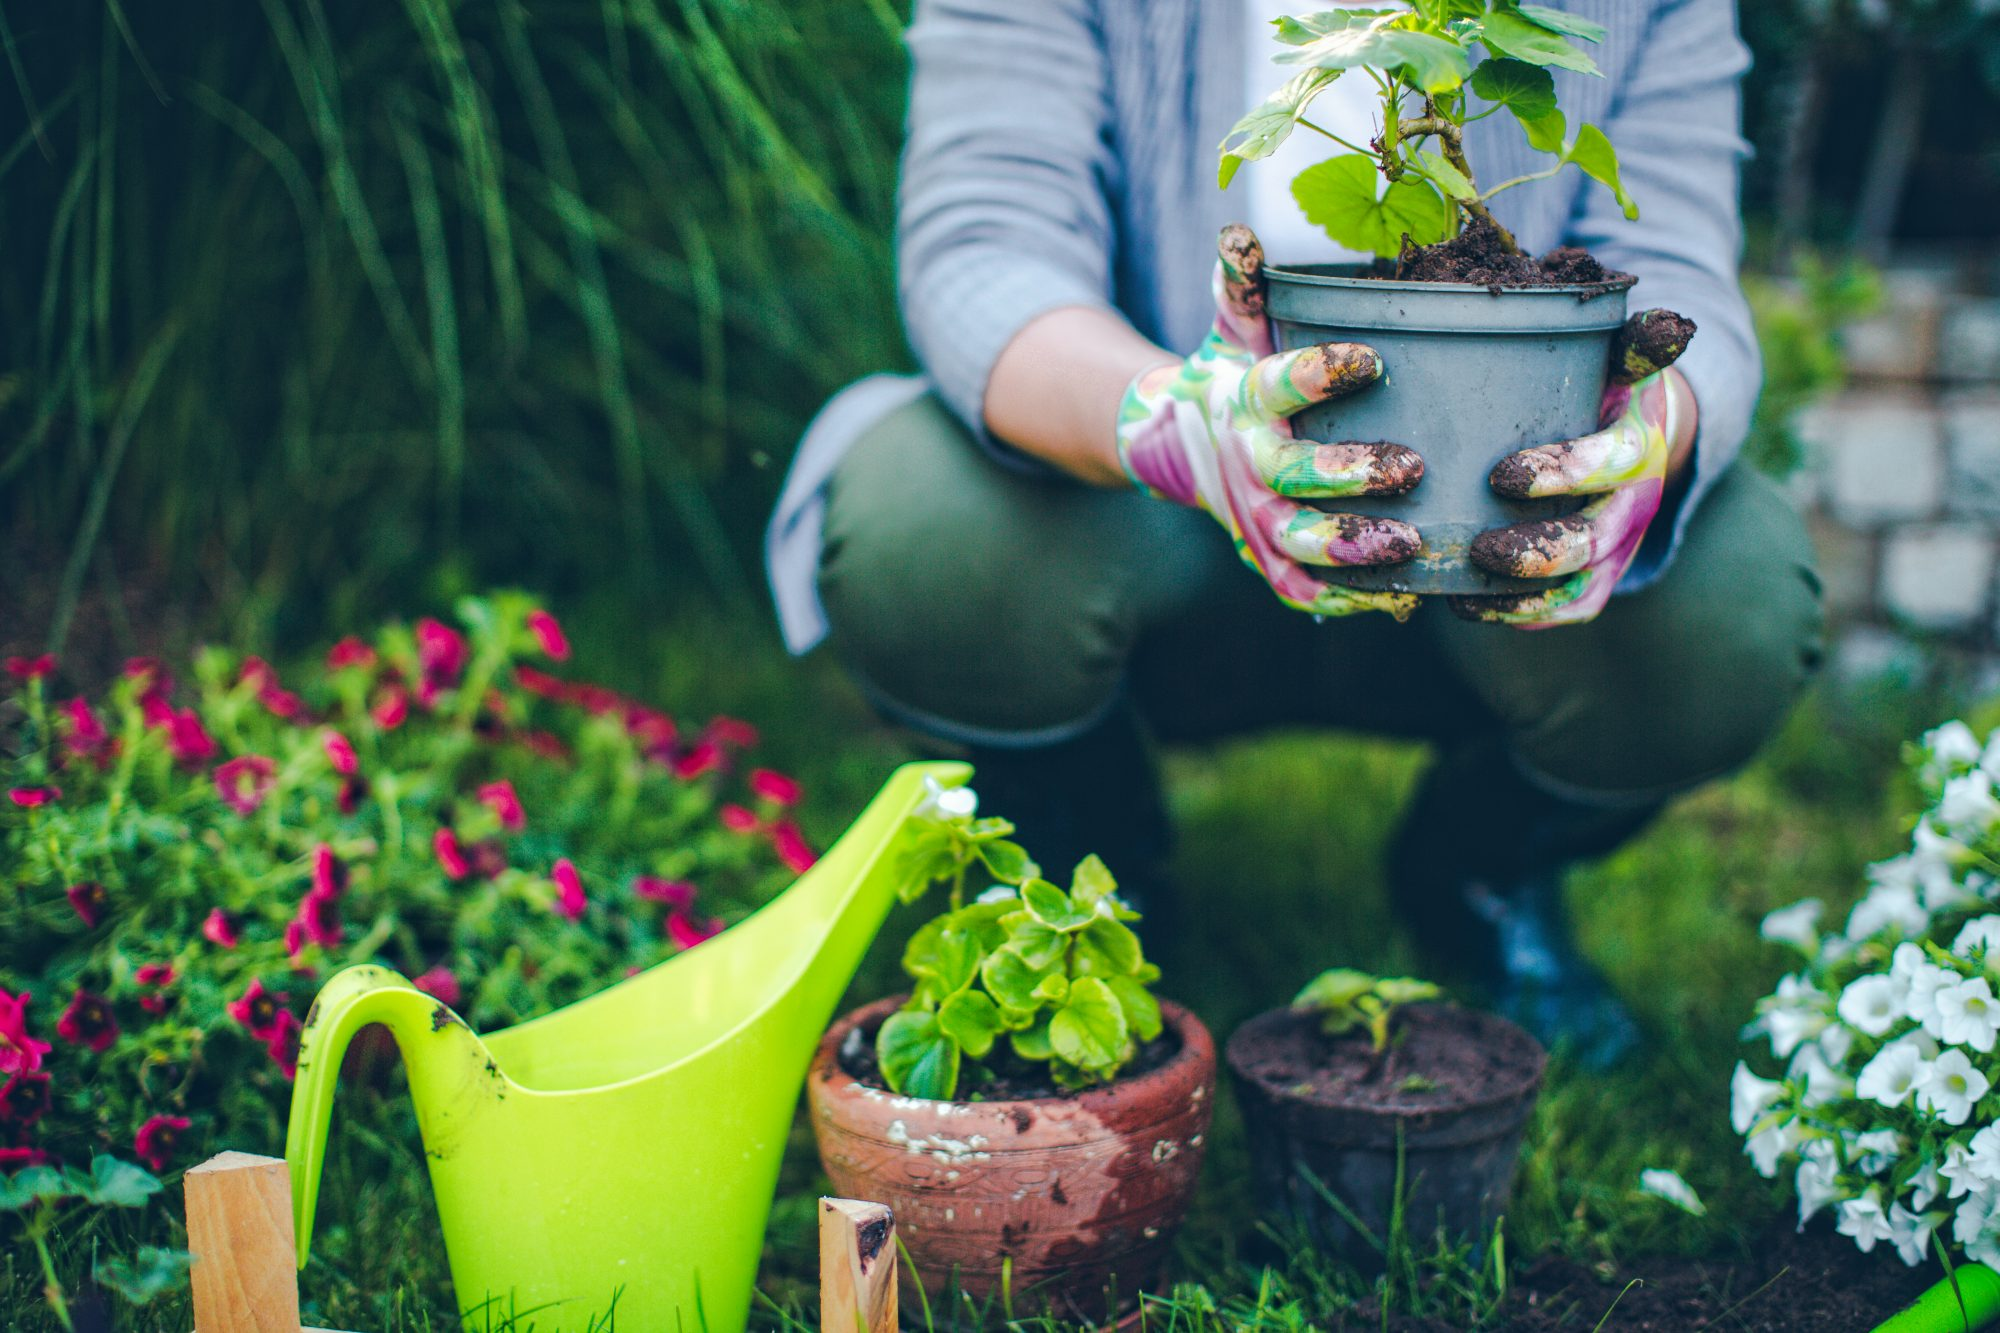 woman crouching while planting flowers garden